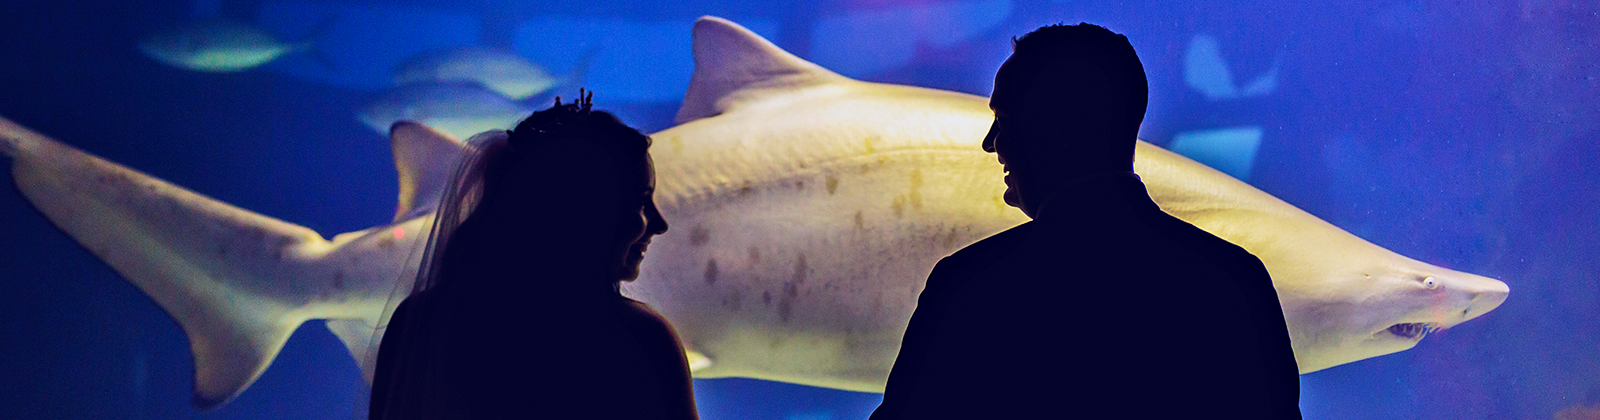 Couple in front of shark